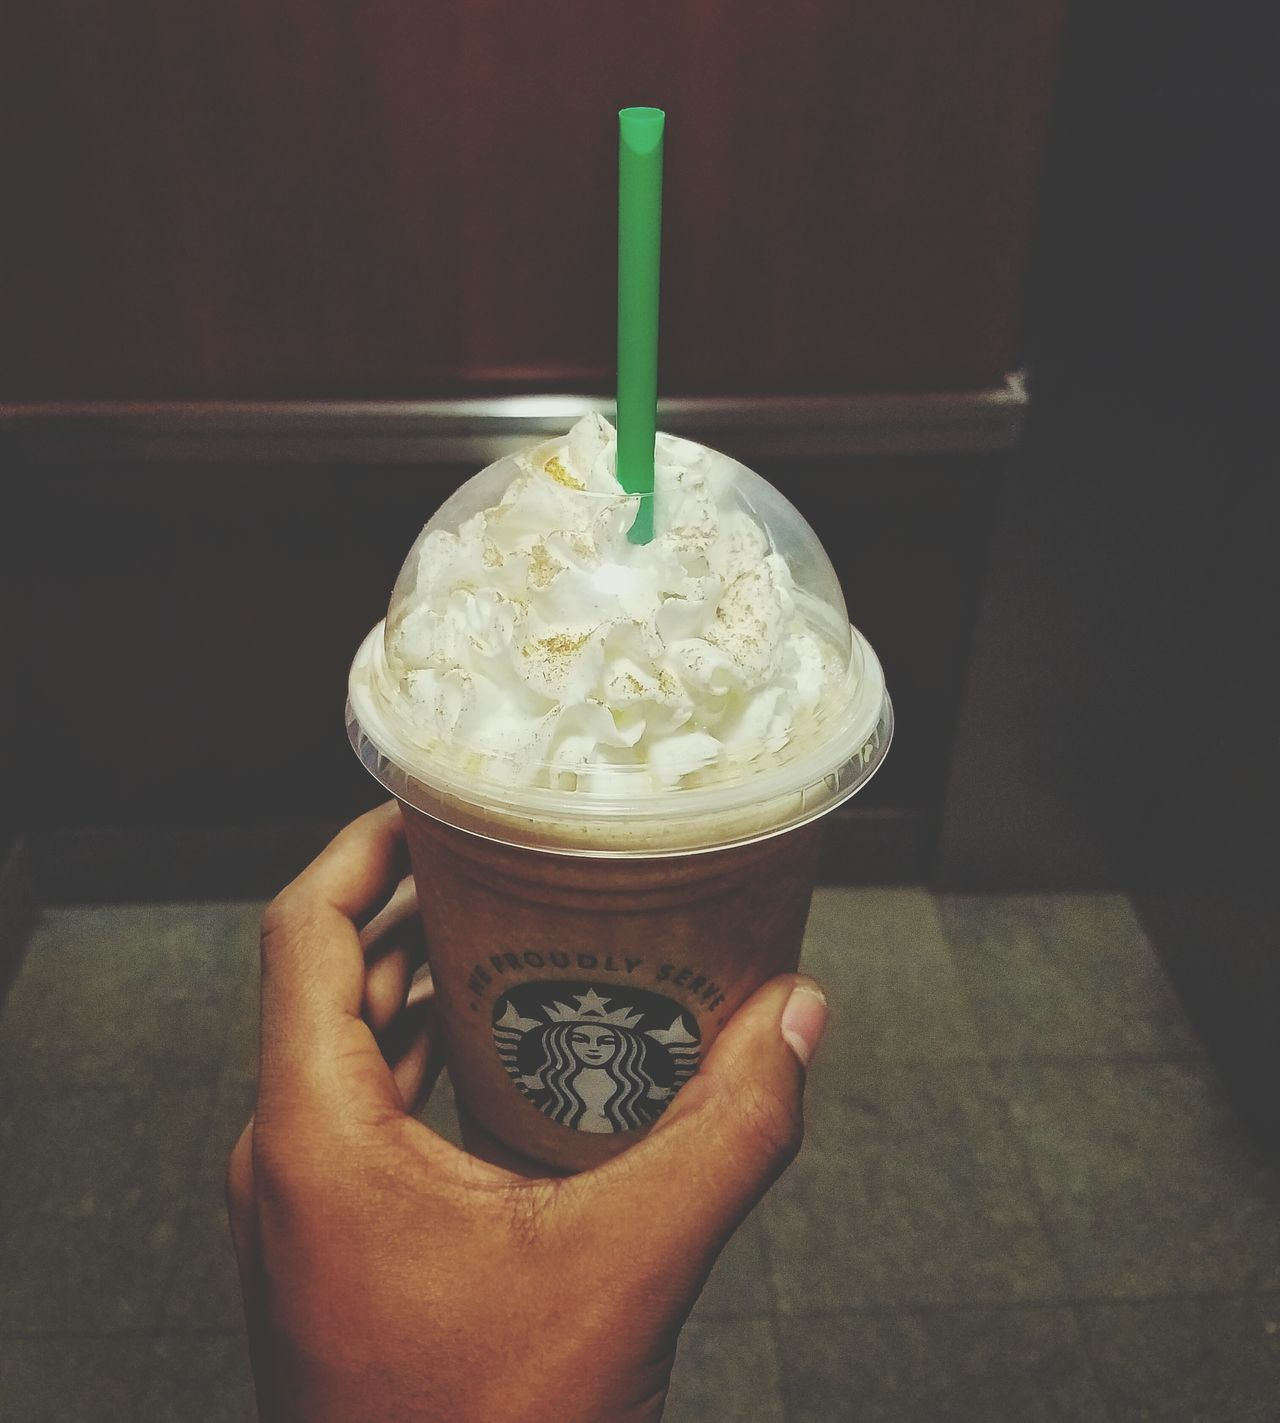 Food And Drink Food Starbucks Starbucks Coffee Pumpkinspice Frappuccino Fall Autumn Frappucino Frappe Sweet L4l Like EyeEm Gallery Bestoftheday Vscocam Likeforlike Followme Likes Follow EyeEm Masterclass Picoftheday VSCO Follow4follow EyeEm Best Shots